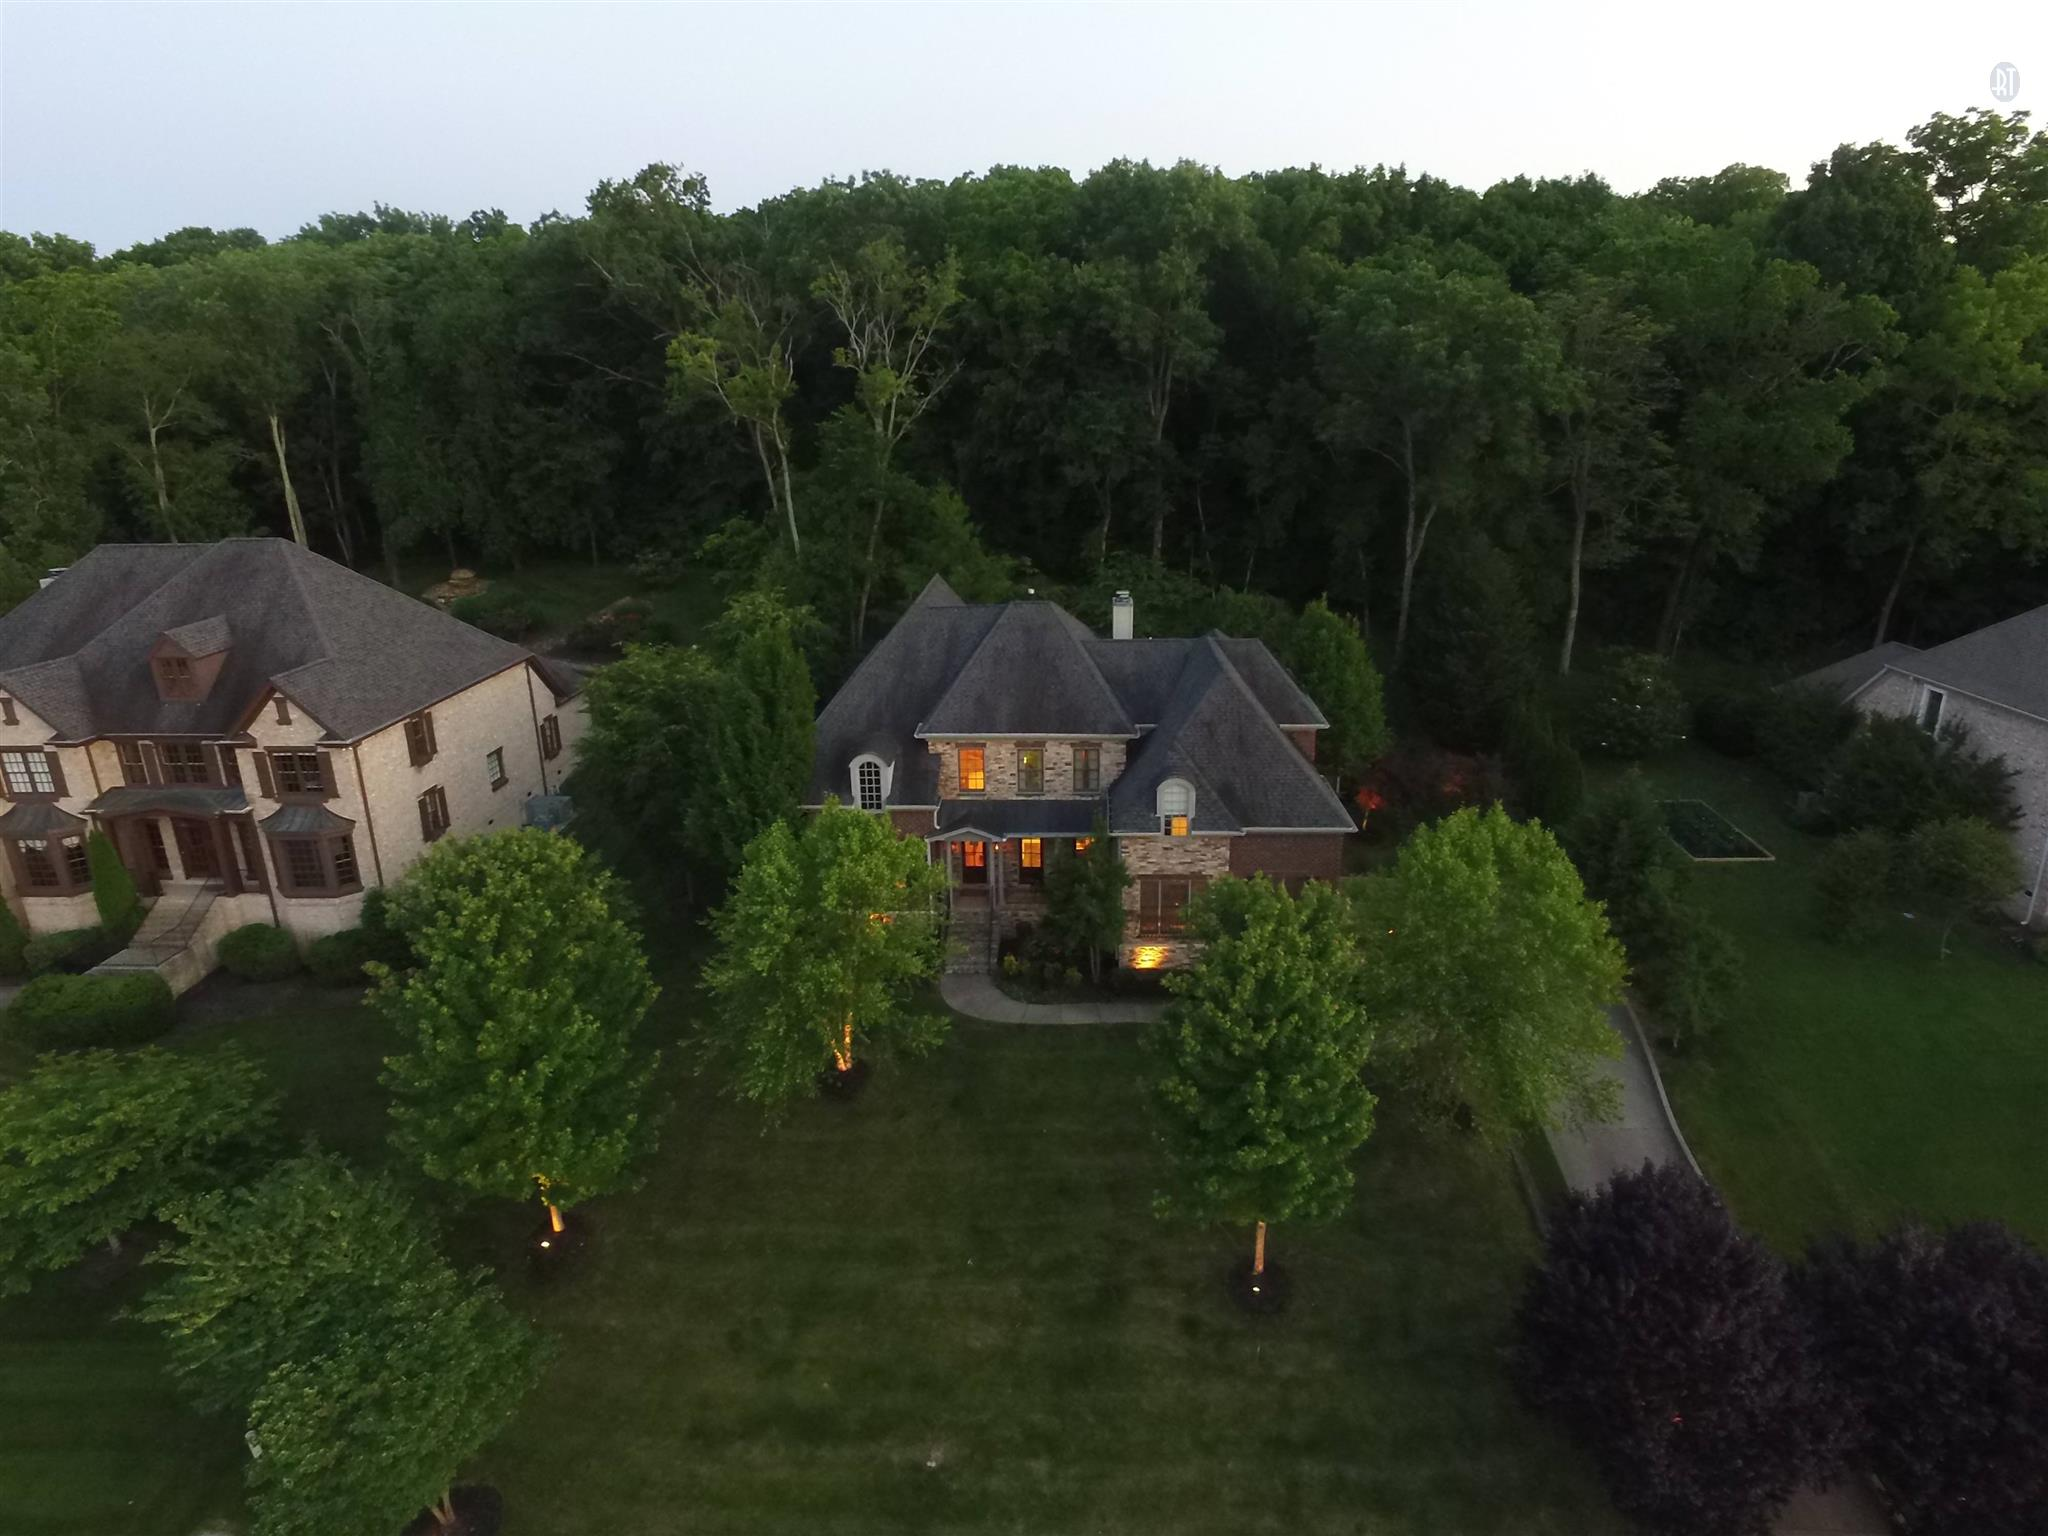 73 Governors Way, Brentwood, TN 37027